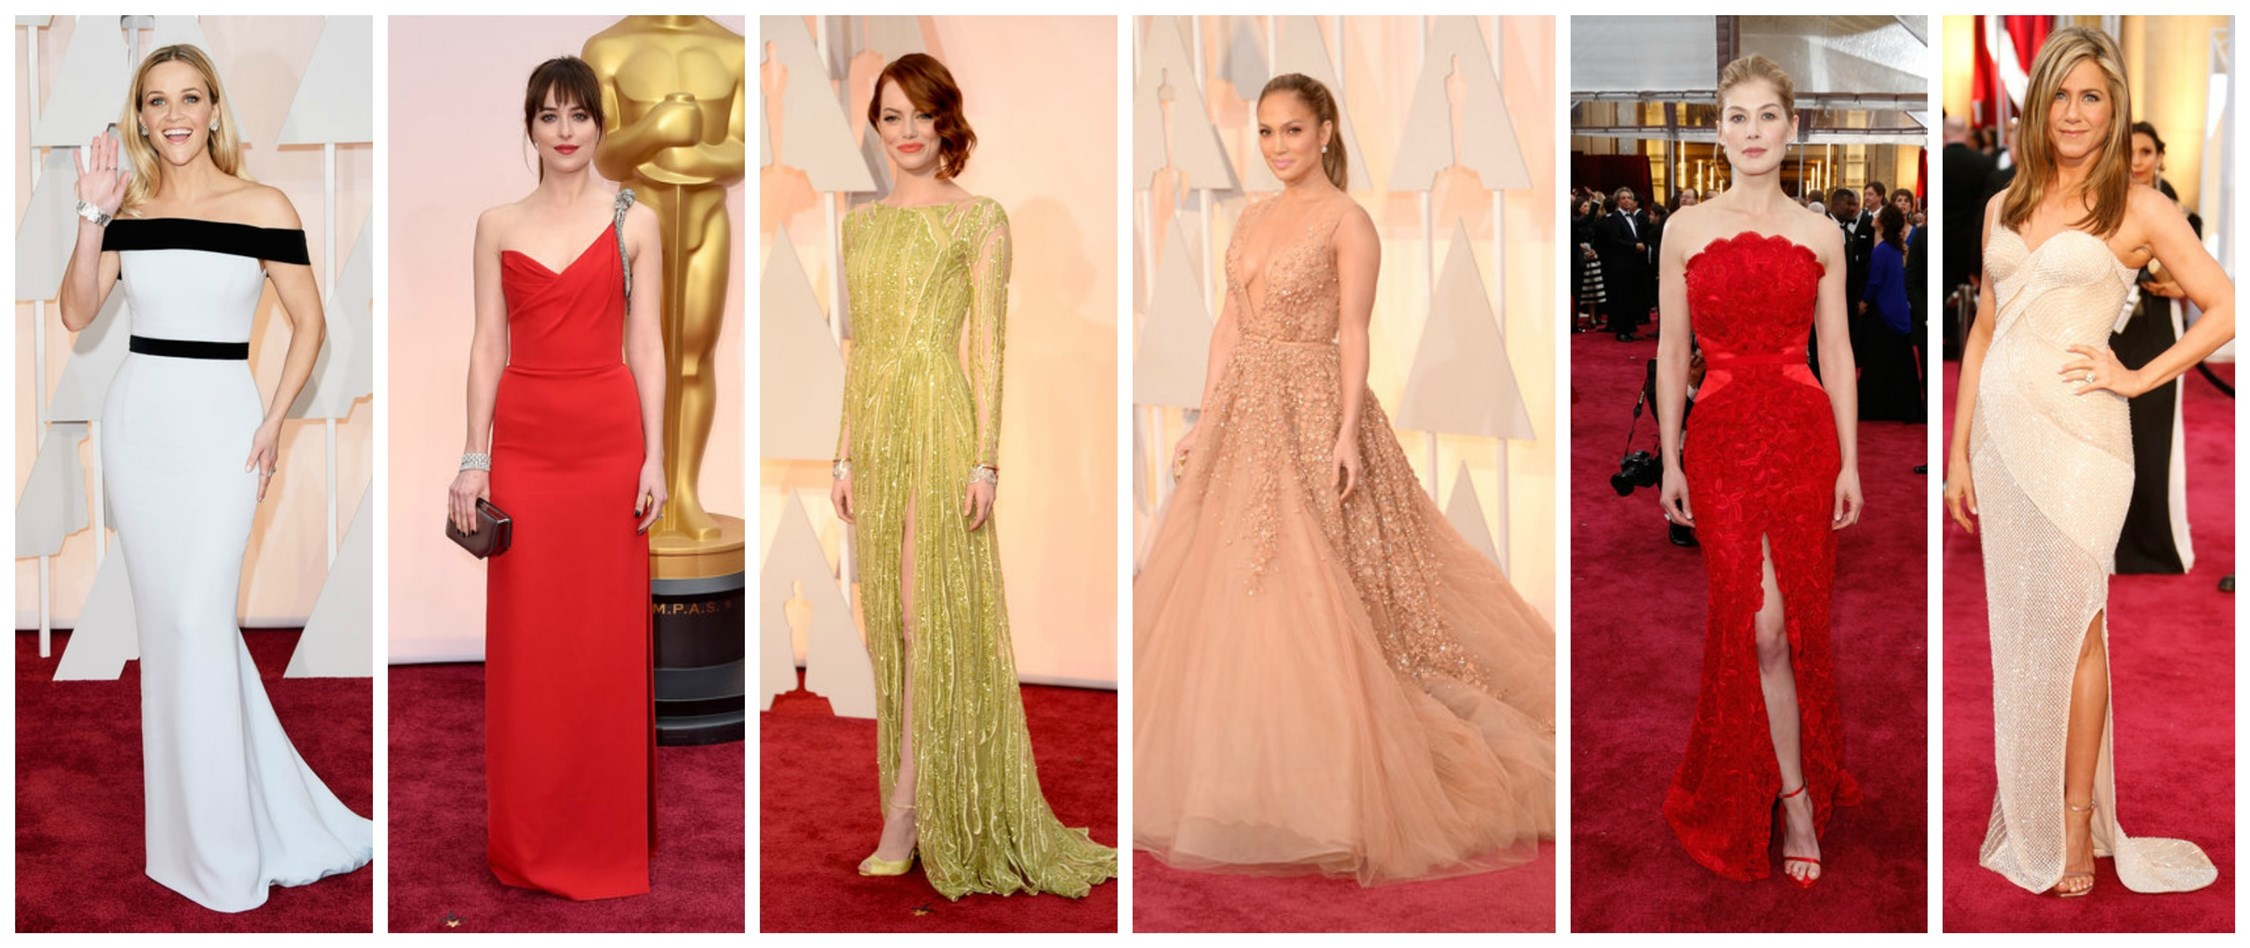 best dressed women at oscars 2015 (2250 x 948)